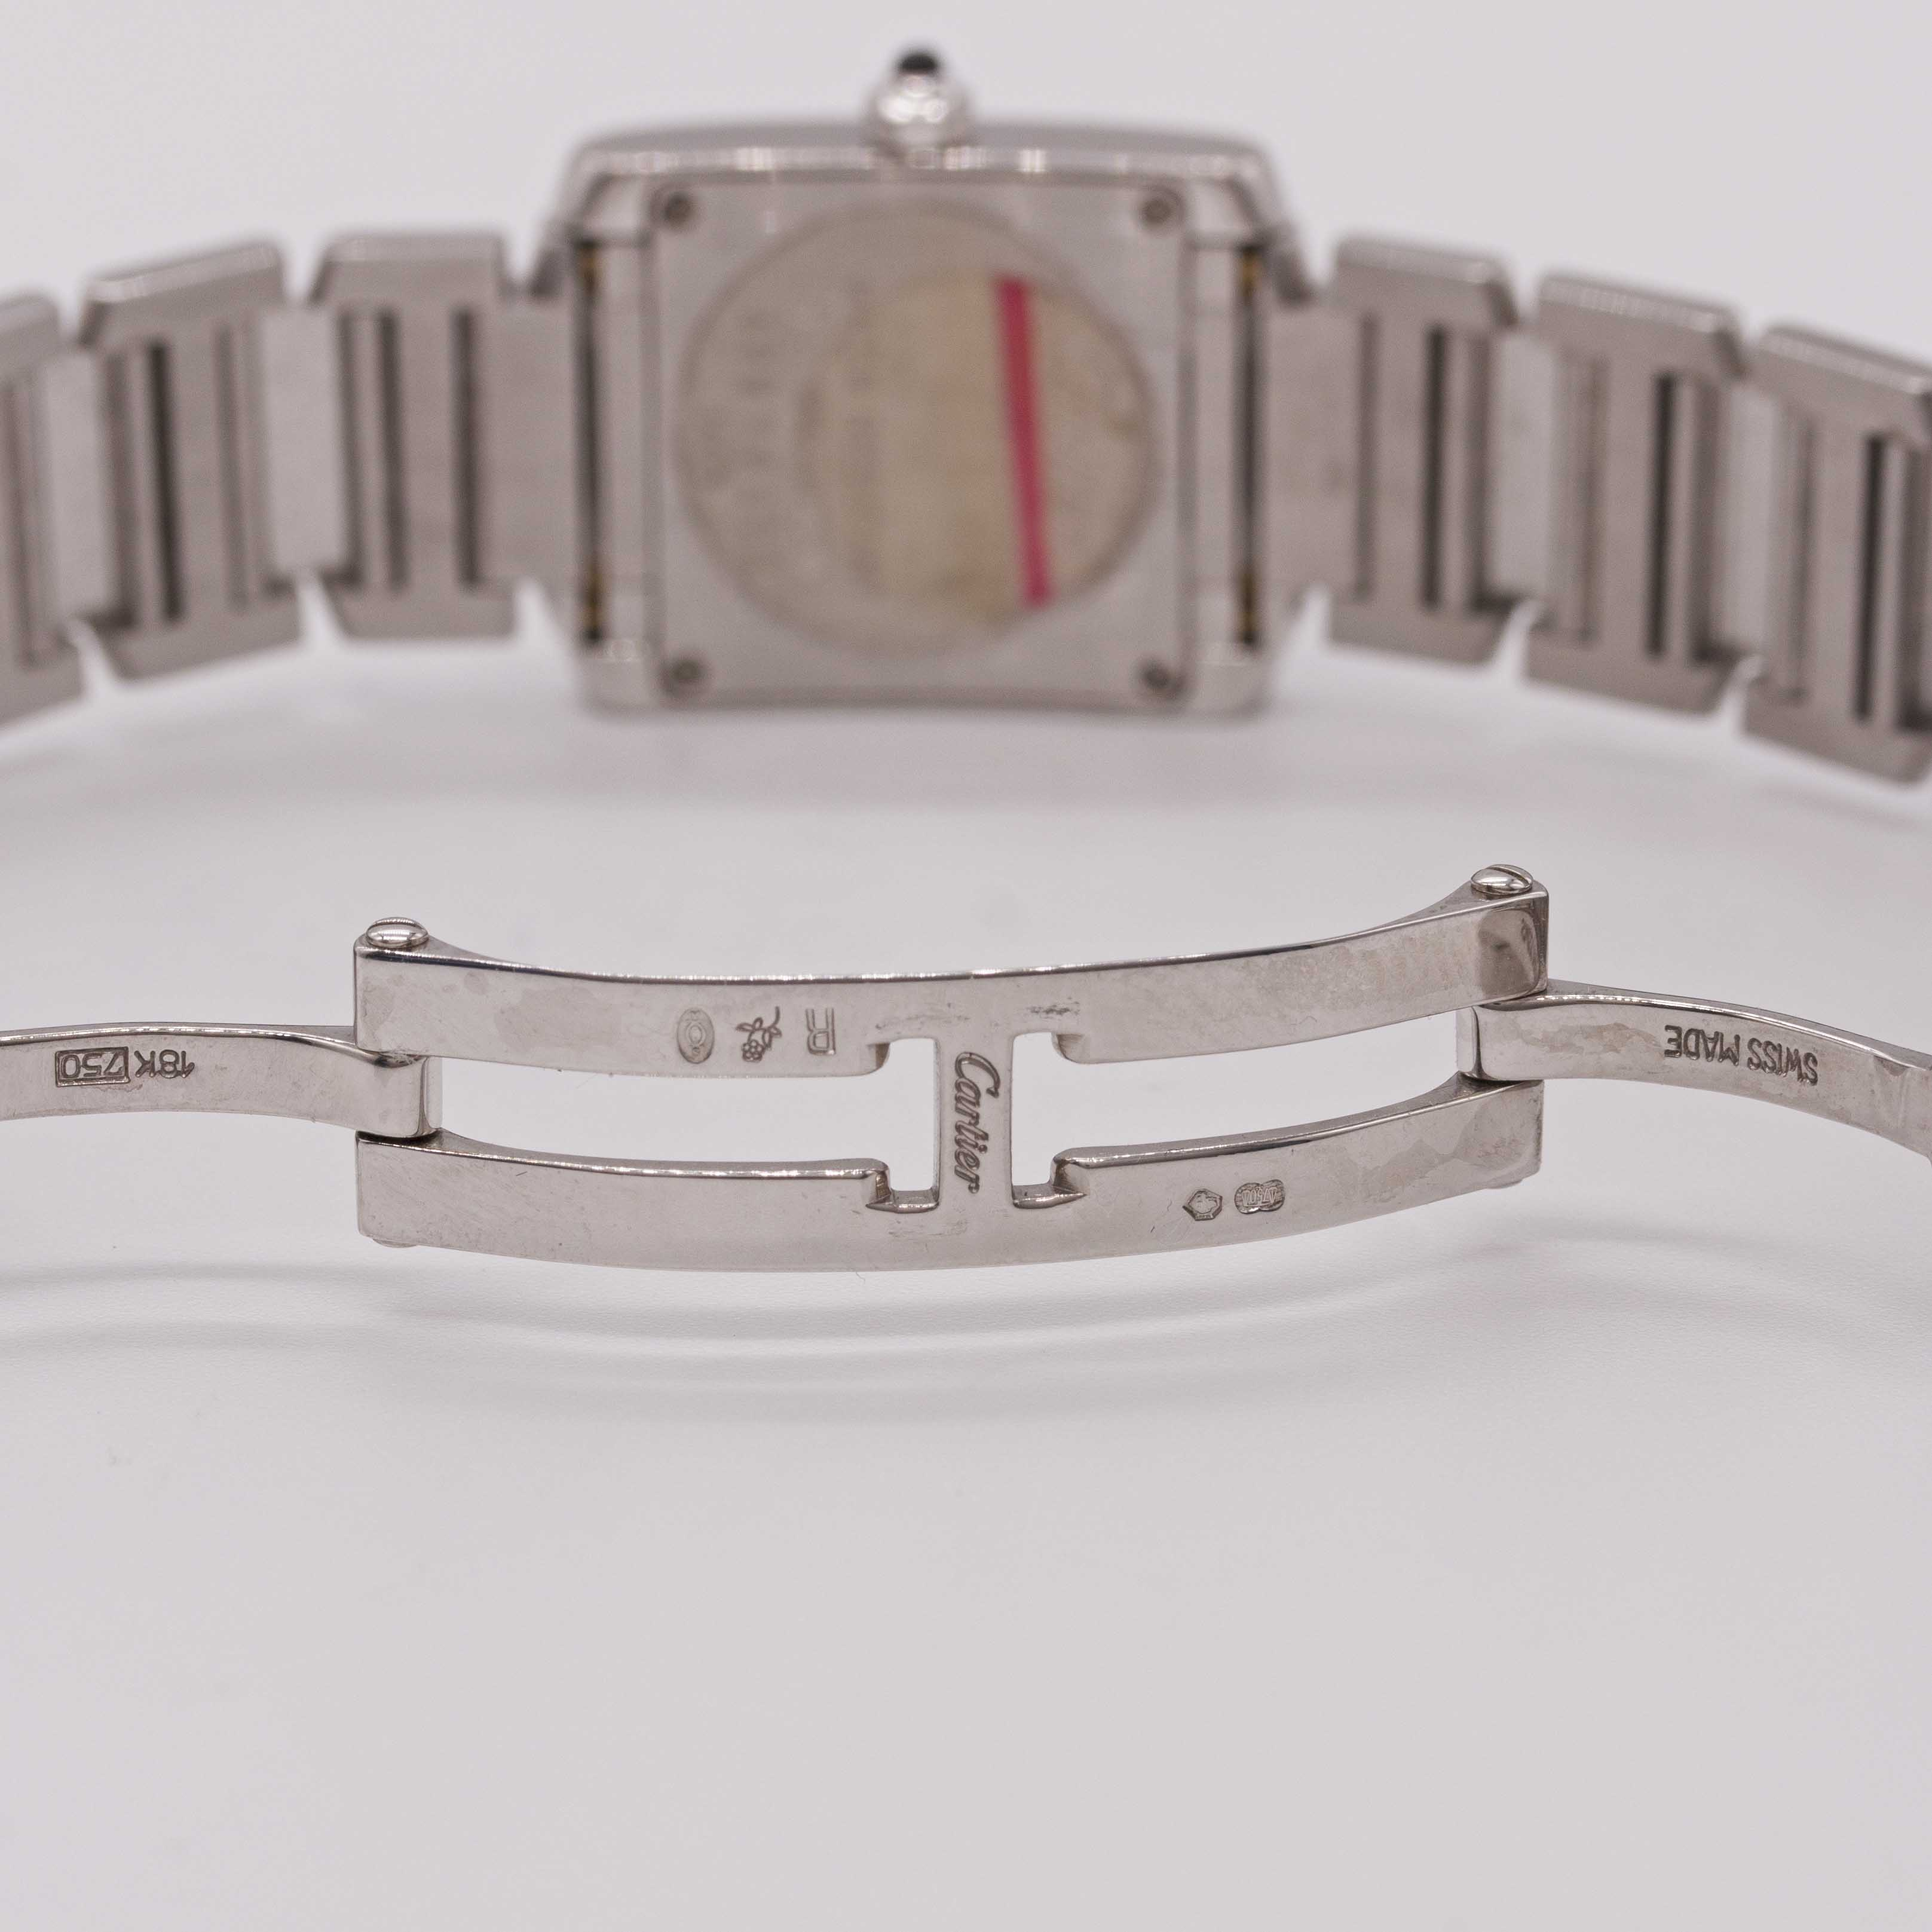 Lot 11 - A LADIES 18K SOLID WHITE GOLD & DIAMOND CARTIER TANK FRANCAISE BRACELET WATCH CIRCA 2005, REF.